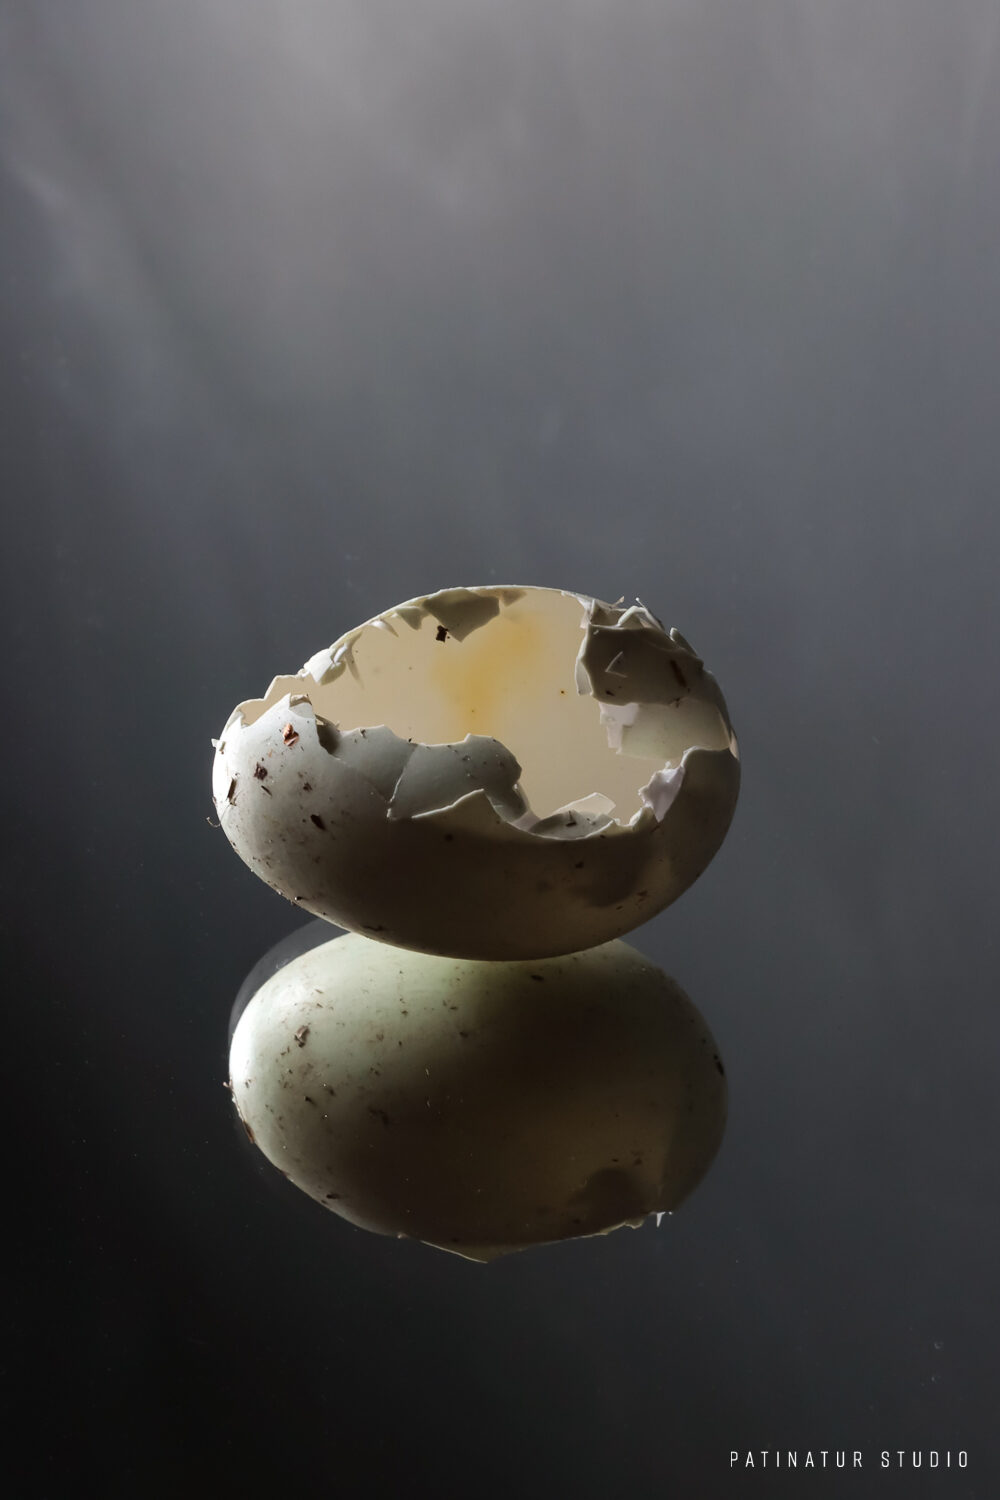 Photo Art | Dark and moody still life with with cracked egg and its reflection